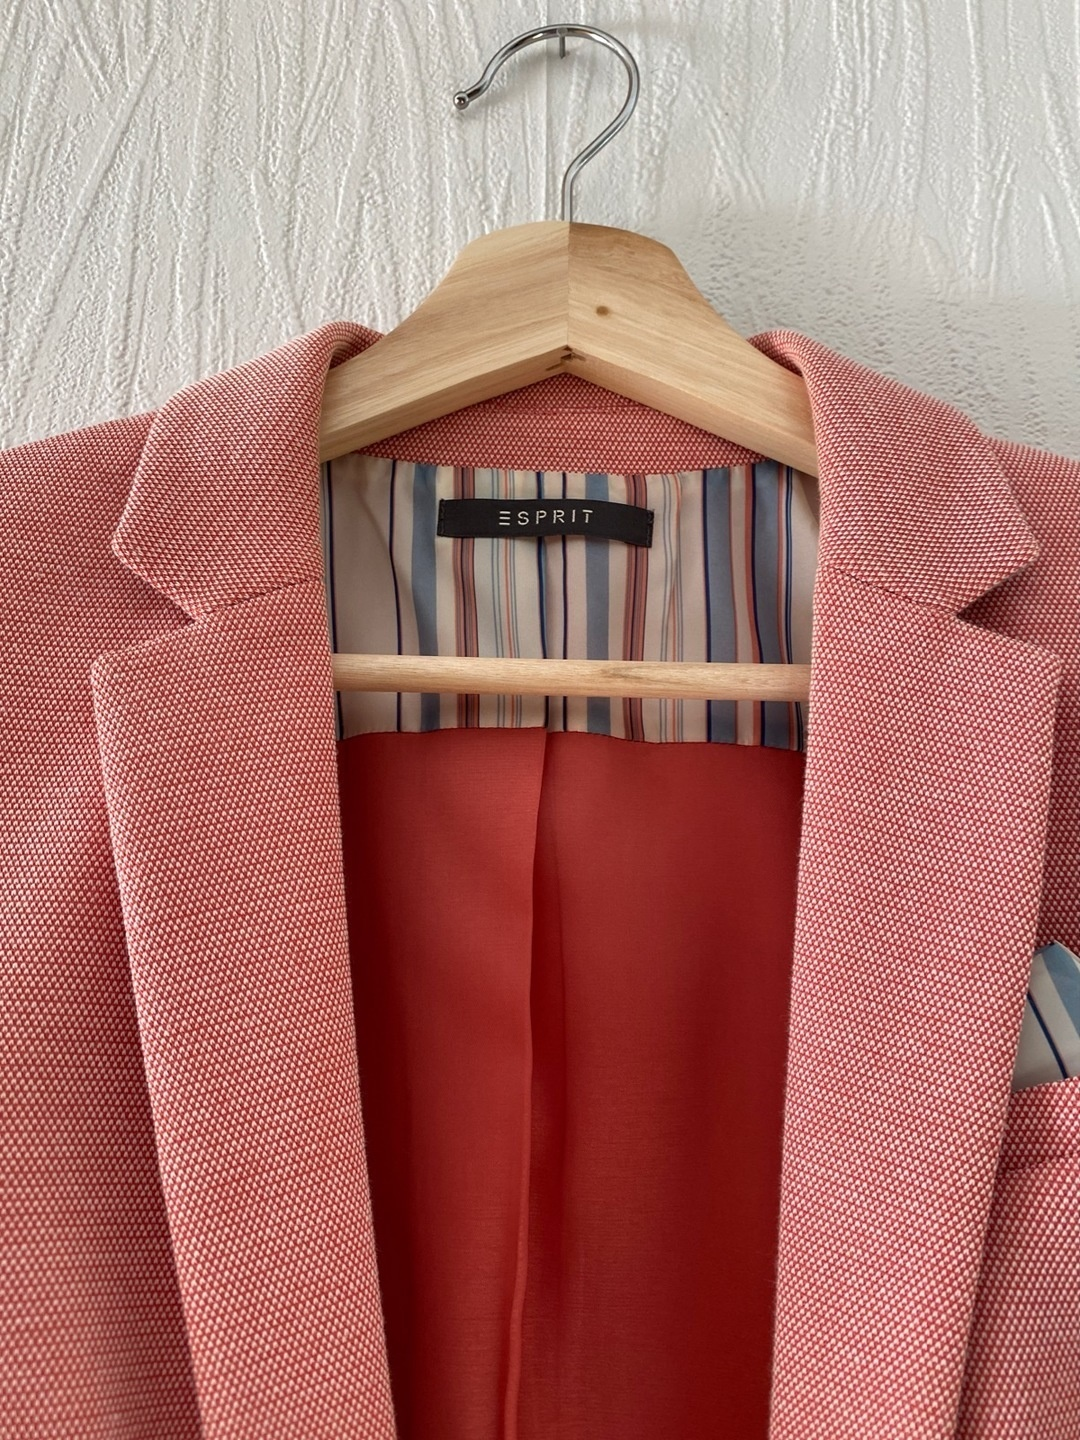 Women's blazers & suits - ESPRIT photo 4